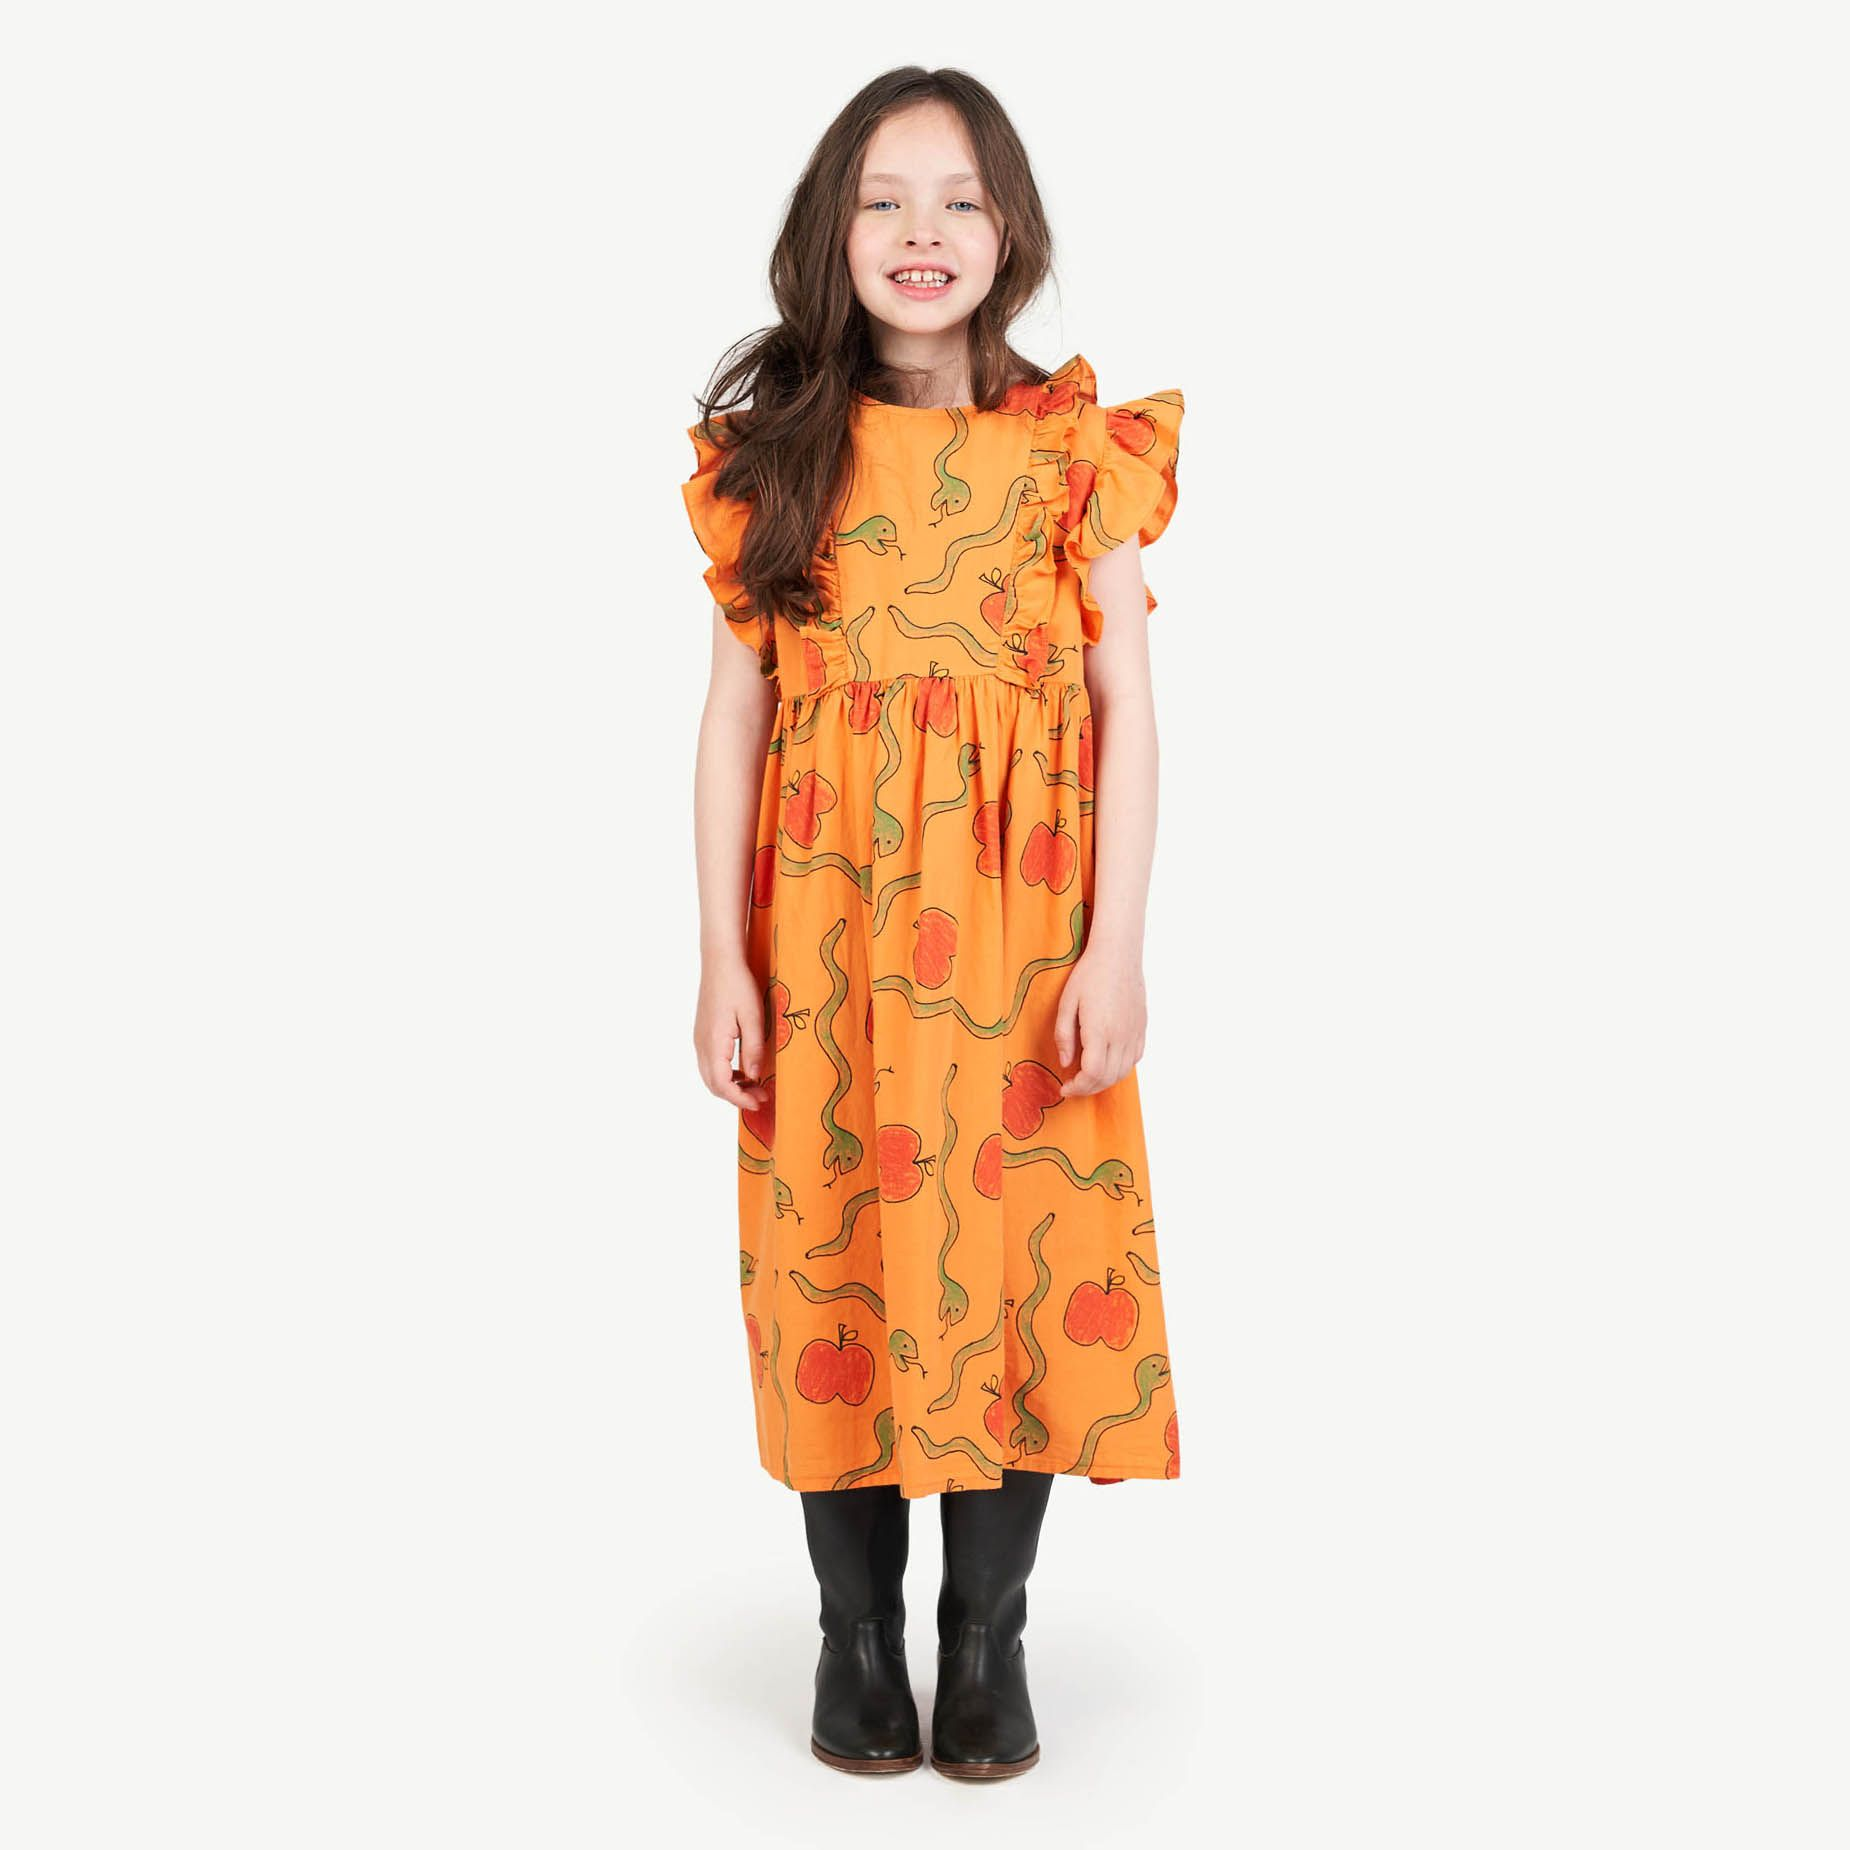 Apples and Snakes Otter Dress img-4